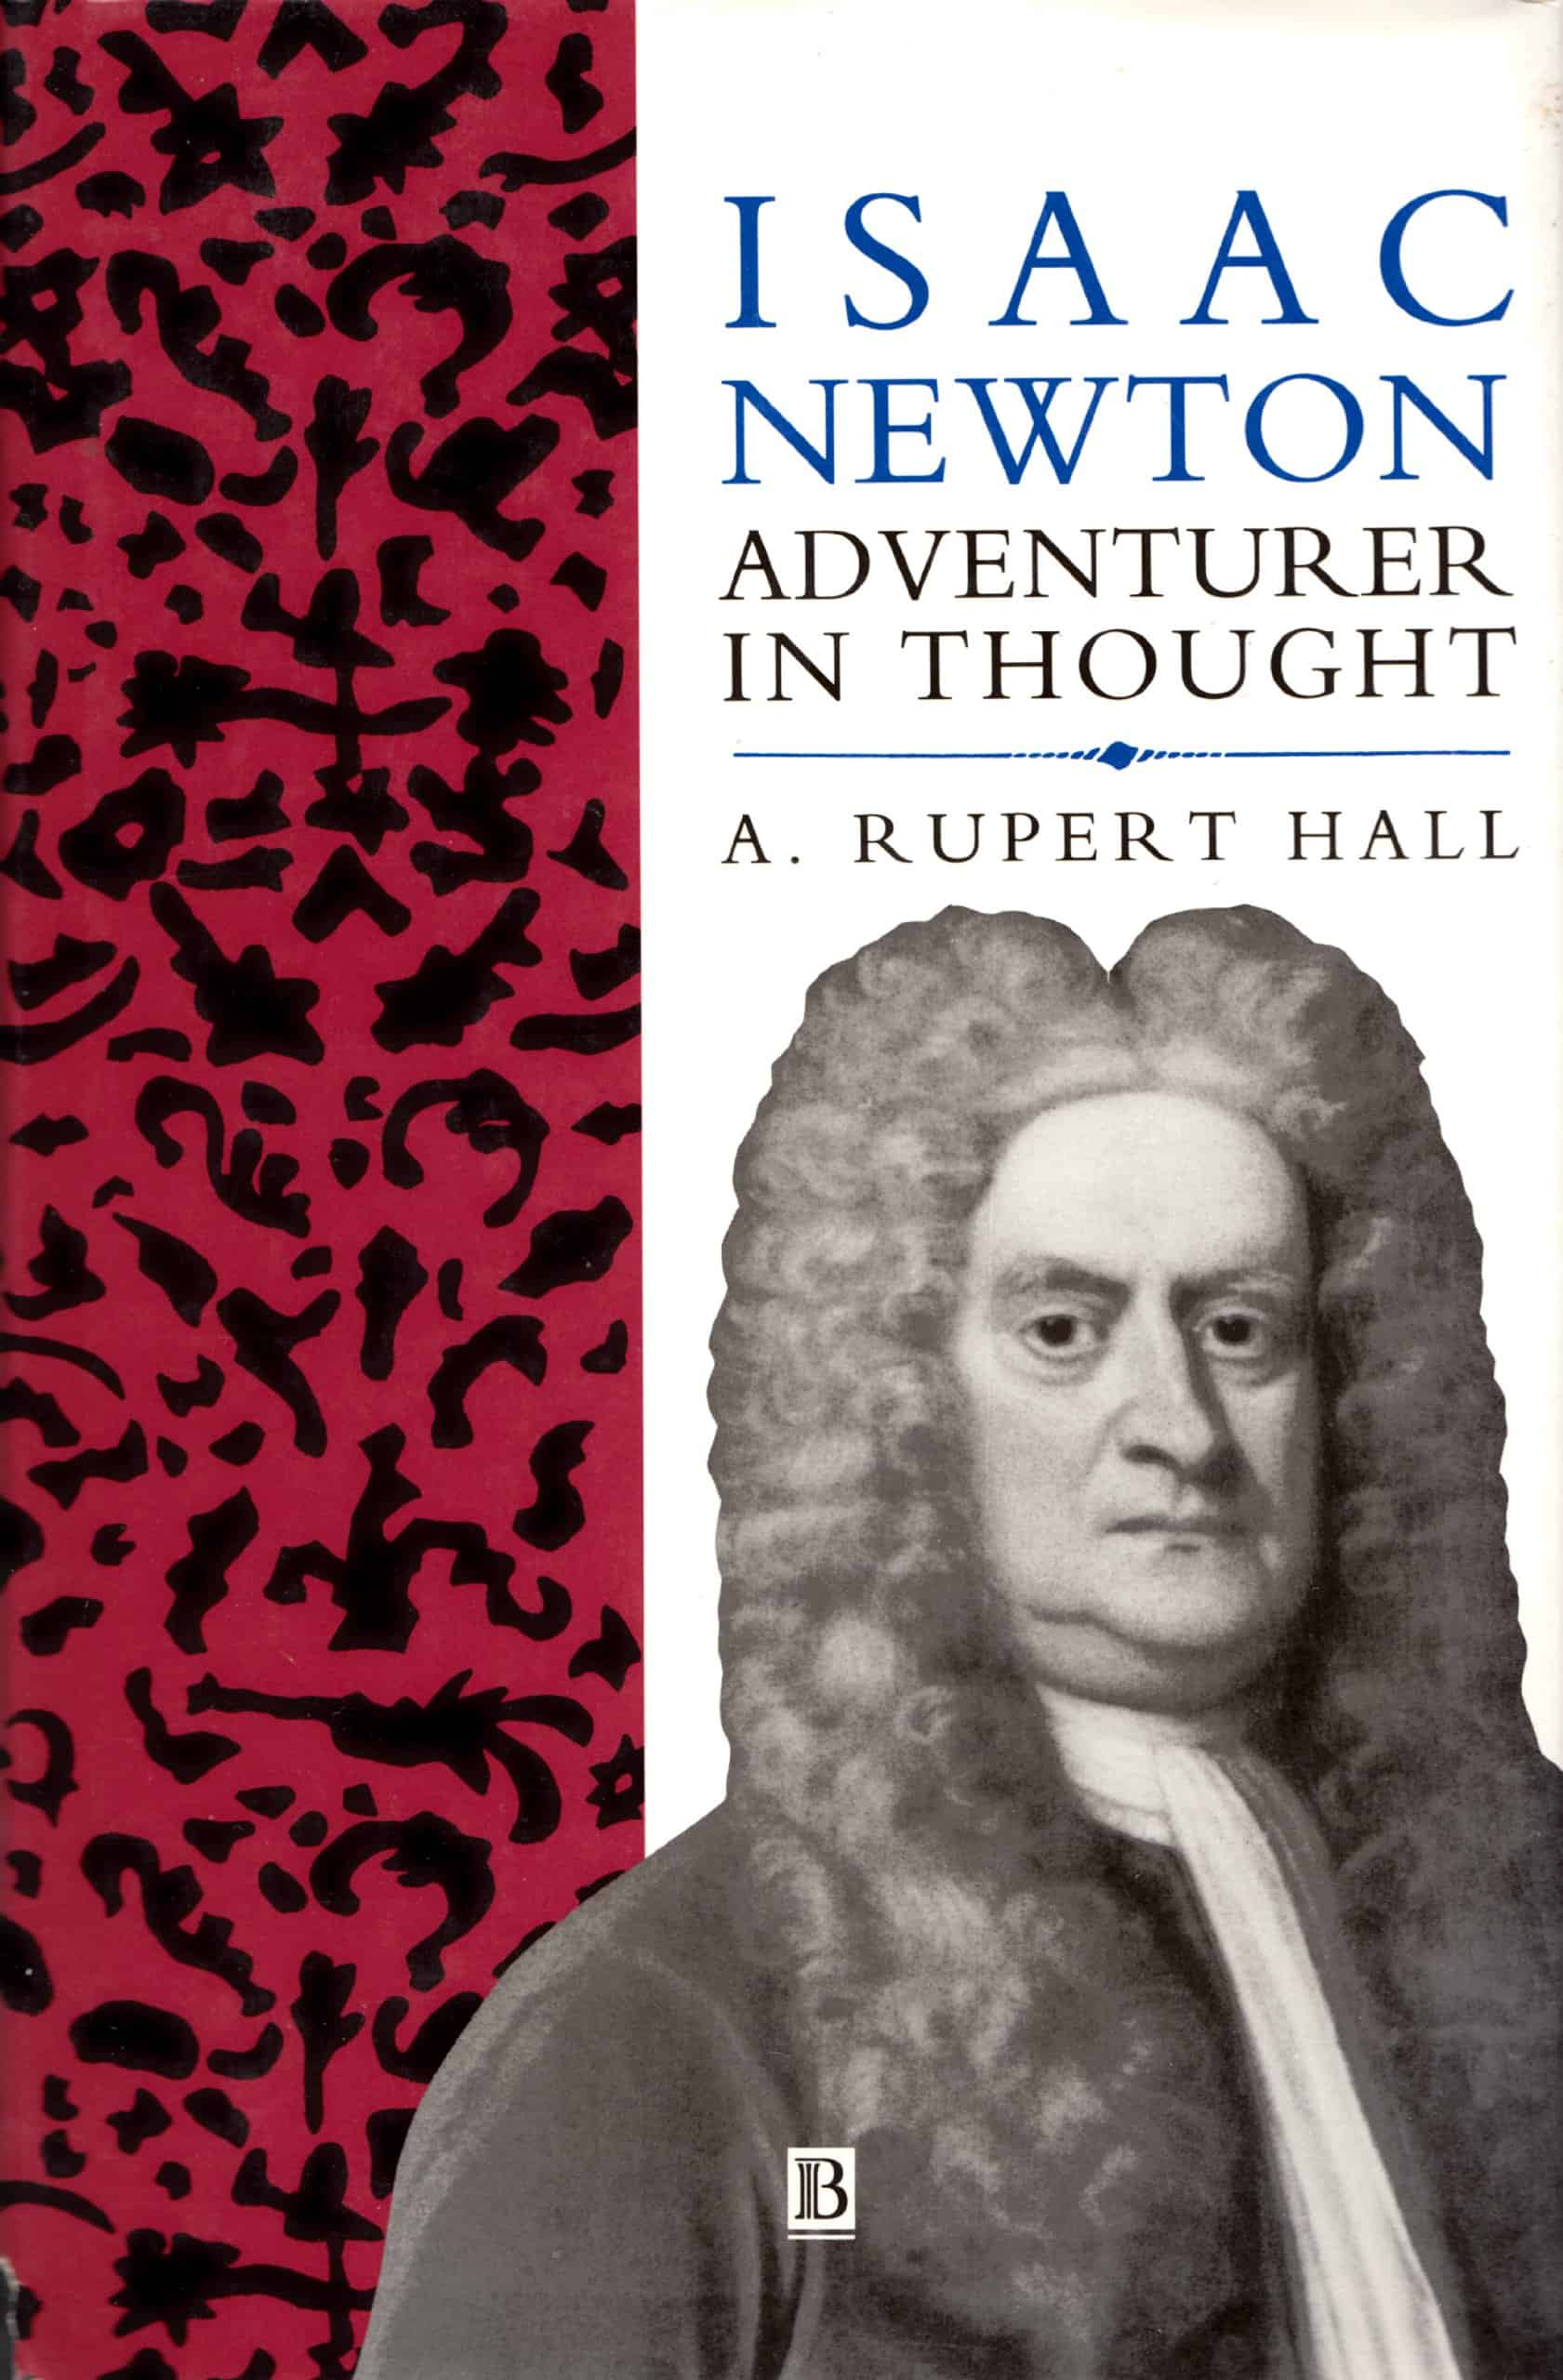 Isaac Newton Adventurer In Thought - Isaac Newton: Adventurer In Thought